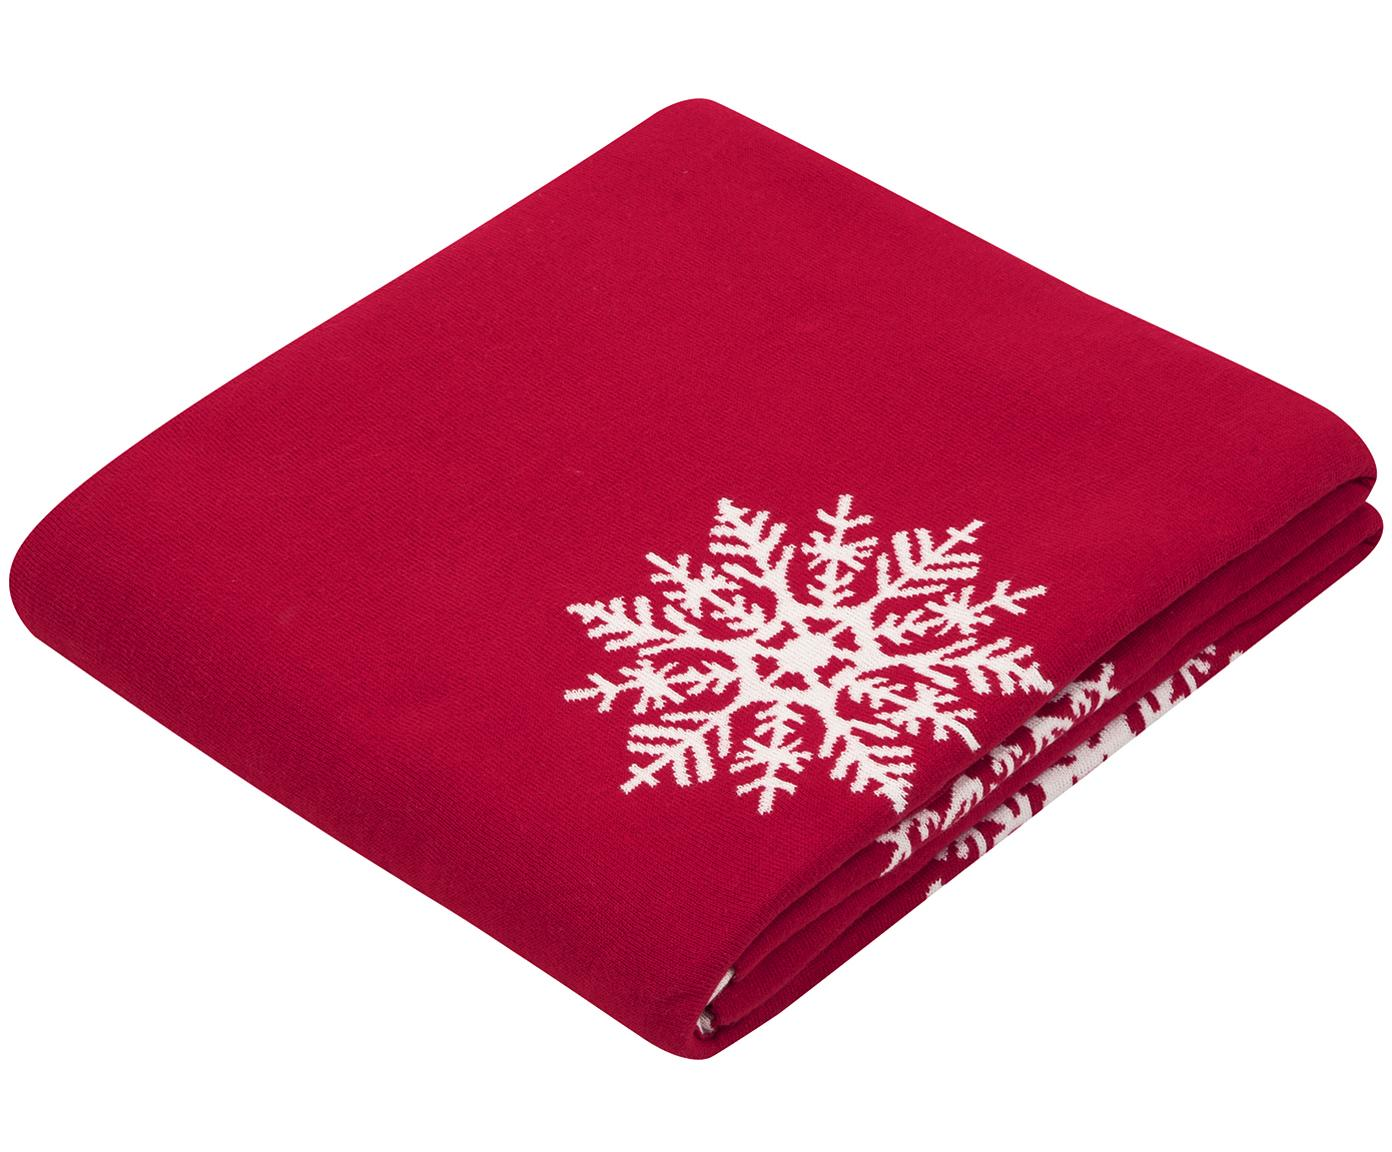 Wendeplaid Snowflake in Rot/Weiss, 100% Baumwolle, Rot, Cremeweiss, 150 x 200 cm